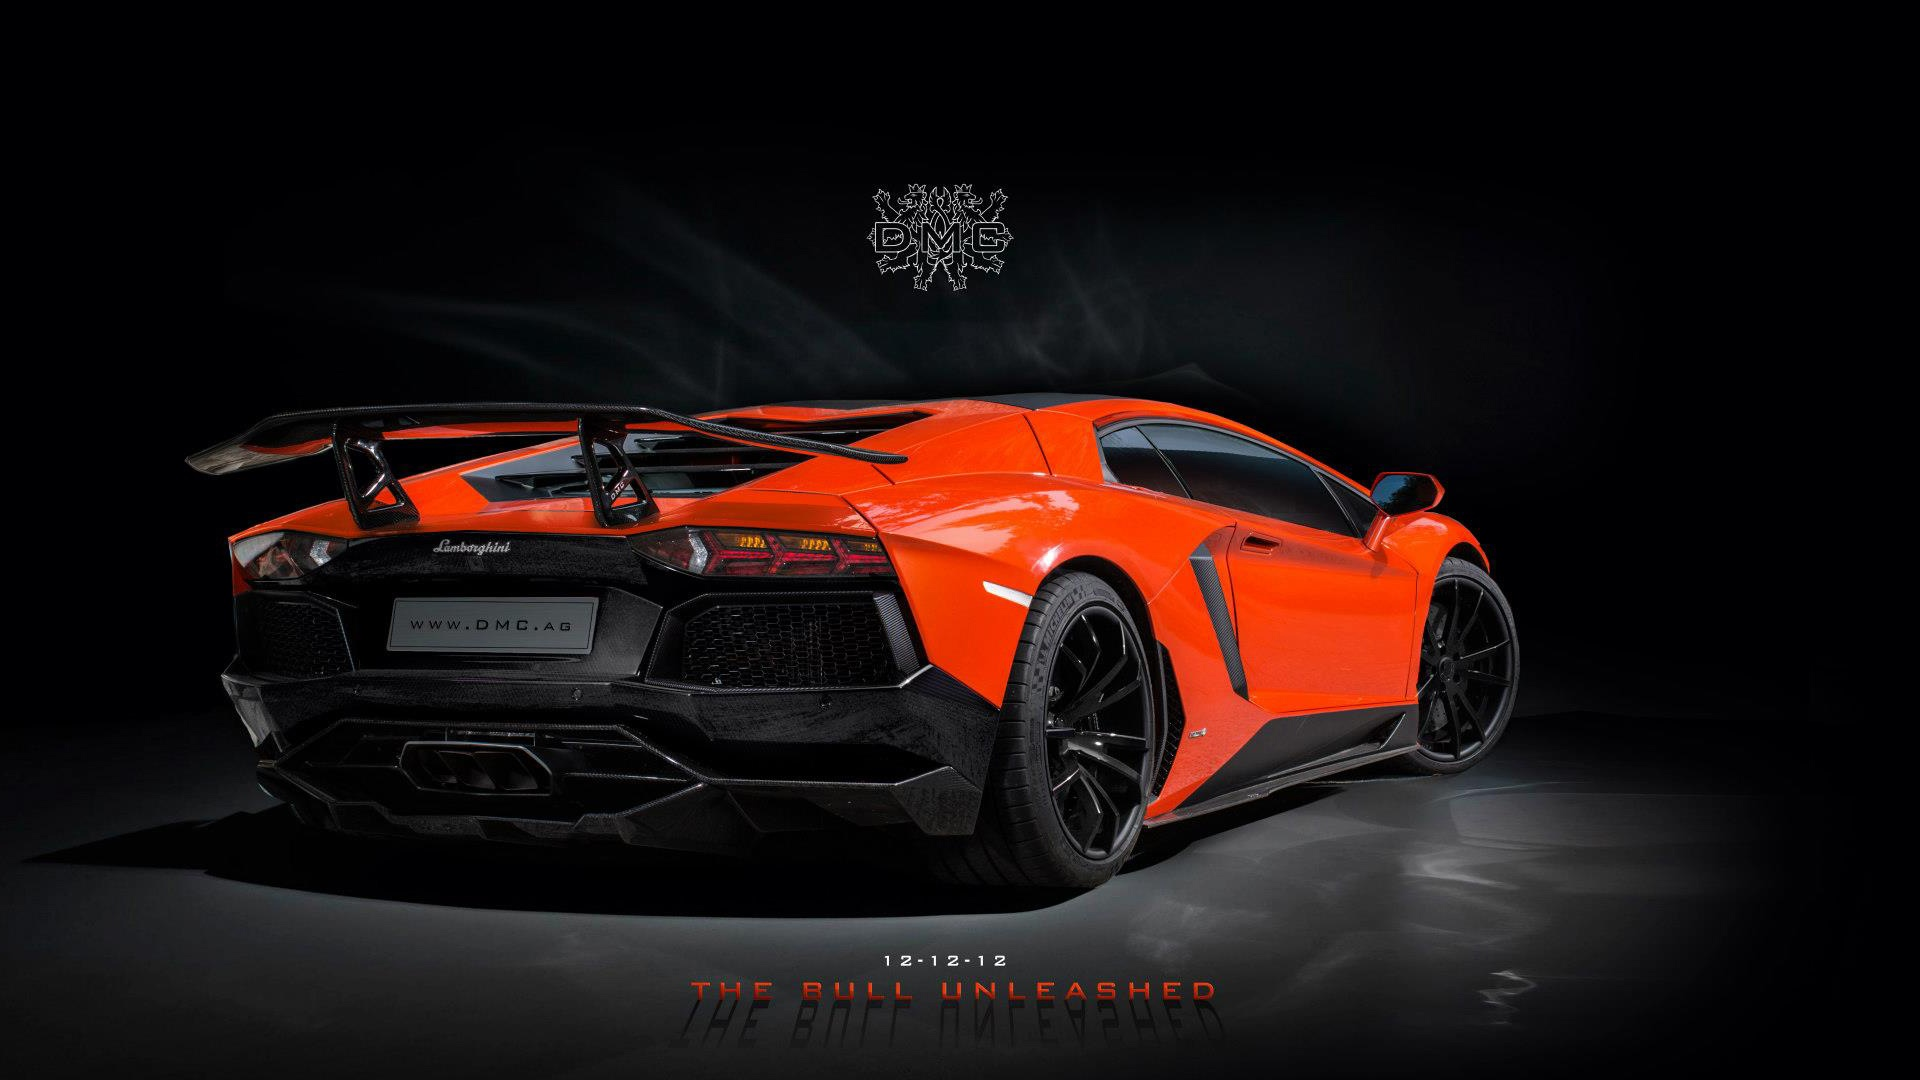 Lamborghini Aventador SV Wallpaper Wallpapers HD Widescreen